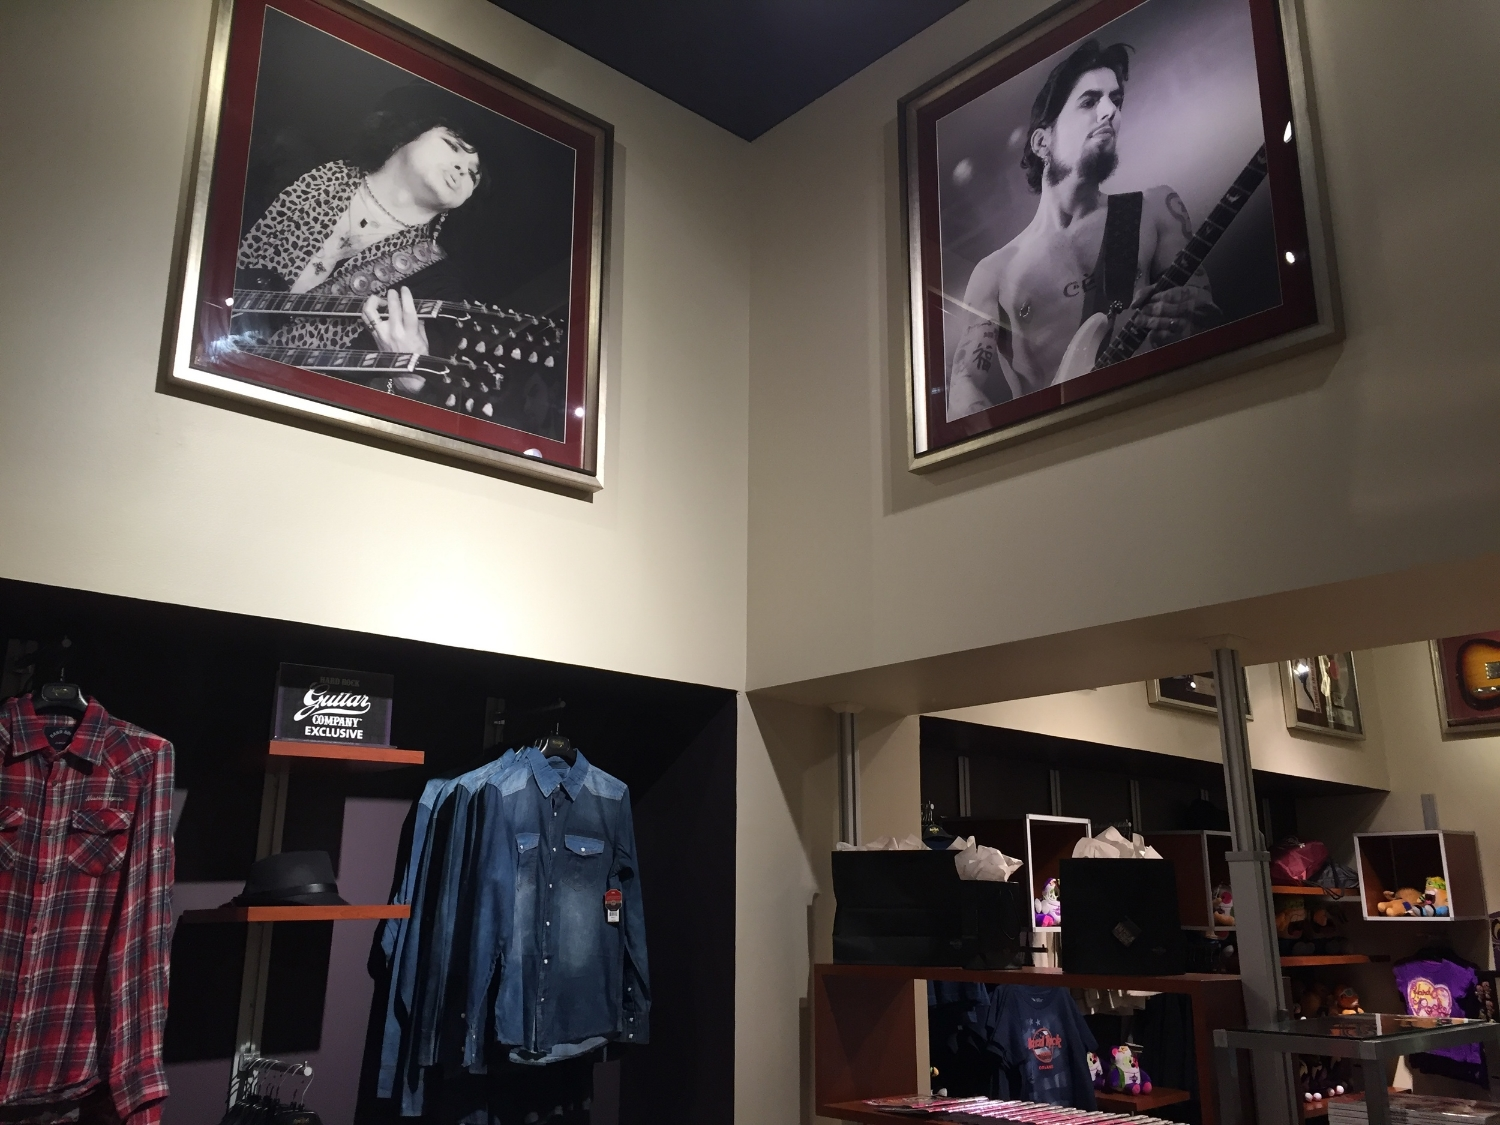 Music Memorabilia Adorns the Walls at Rock Shop in Hard Rock Hotel Orlando